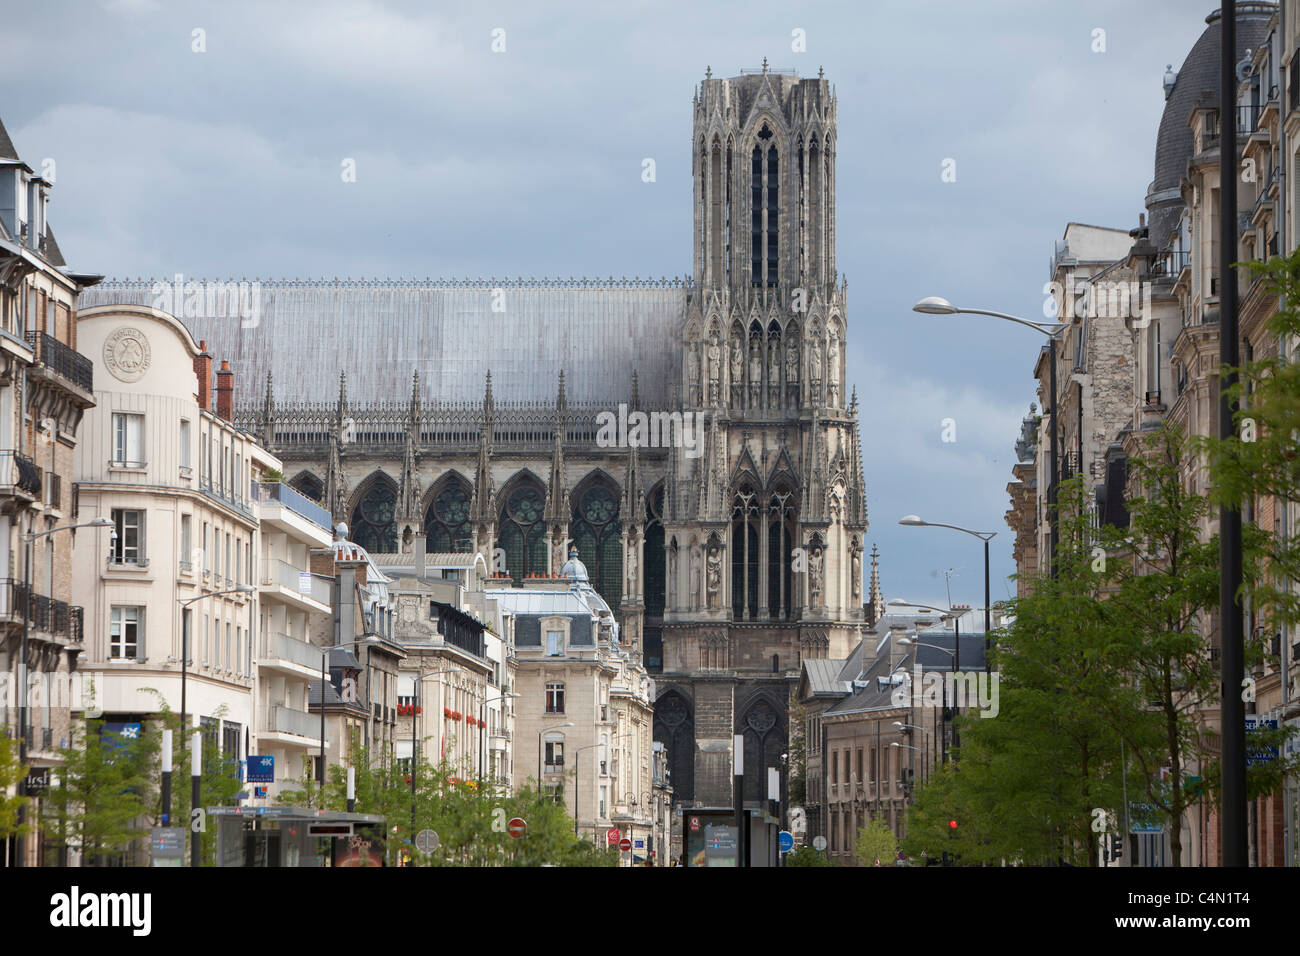 France Reims Cathedral City Buildings Urban Gothic Church Art Monument Tower Village Ancient Notre Dame Catholic